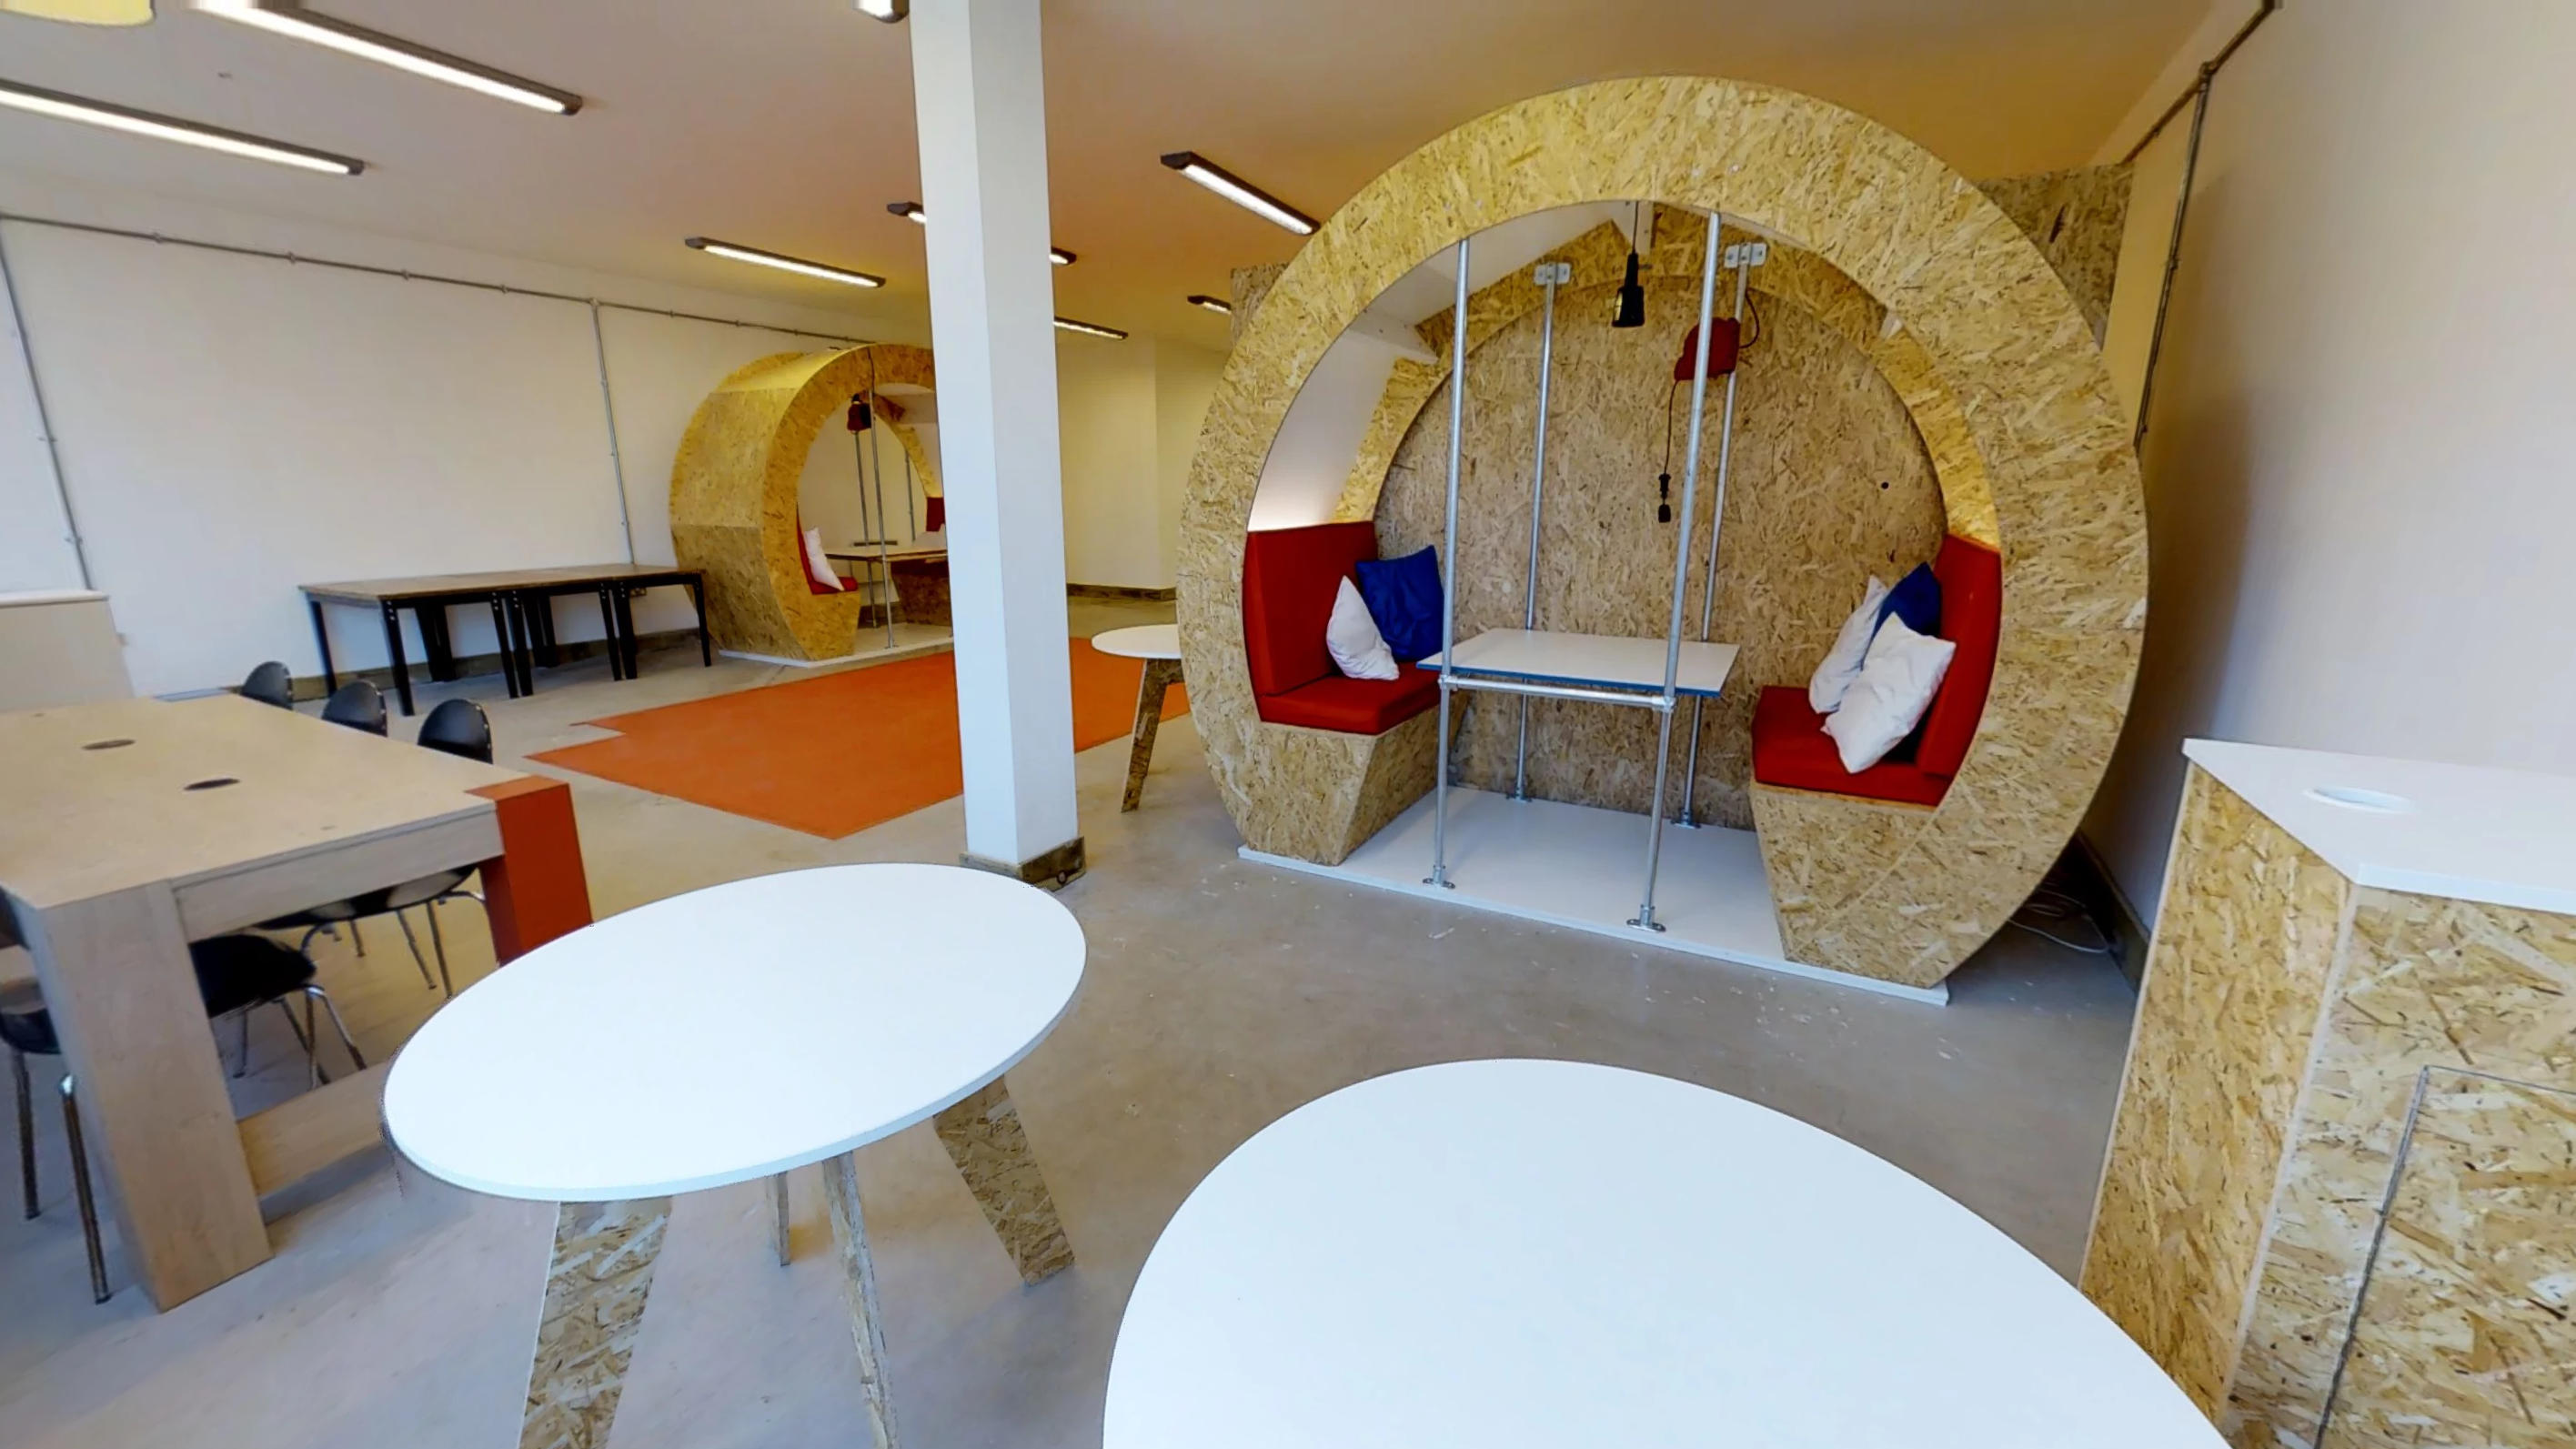 The Google Innovation Studio Is Situated At Tramshed Tech A Collaborative Workspace Home To And Creative Industries In Cardiff